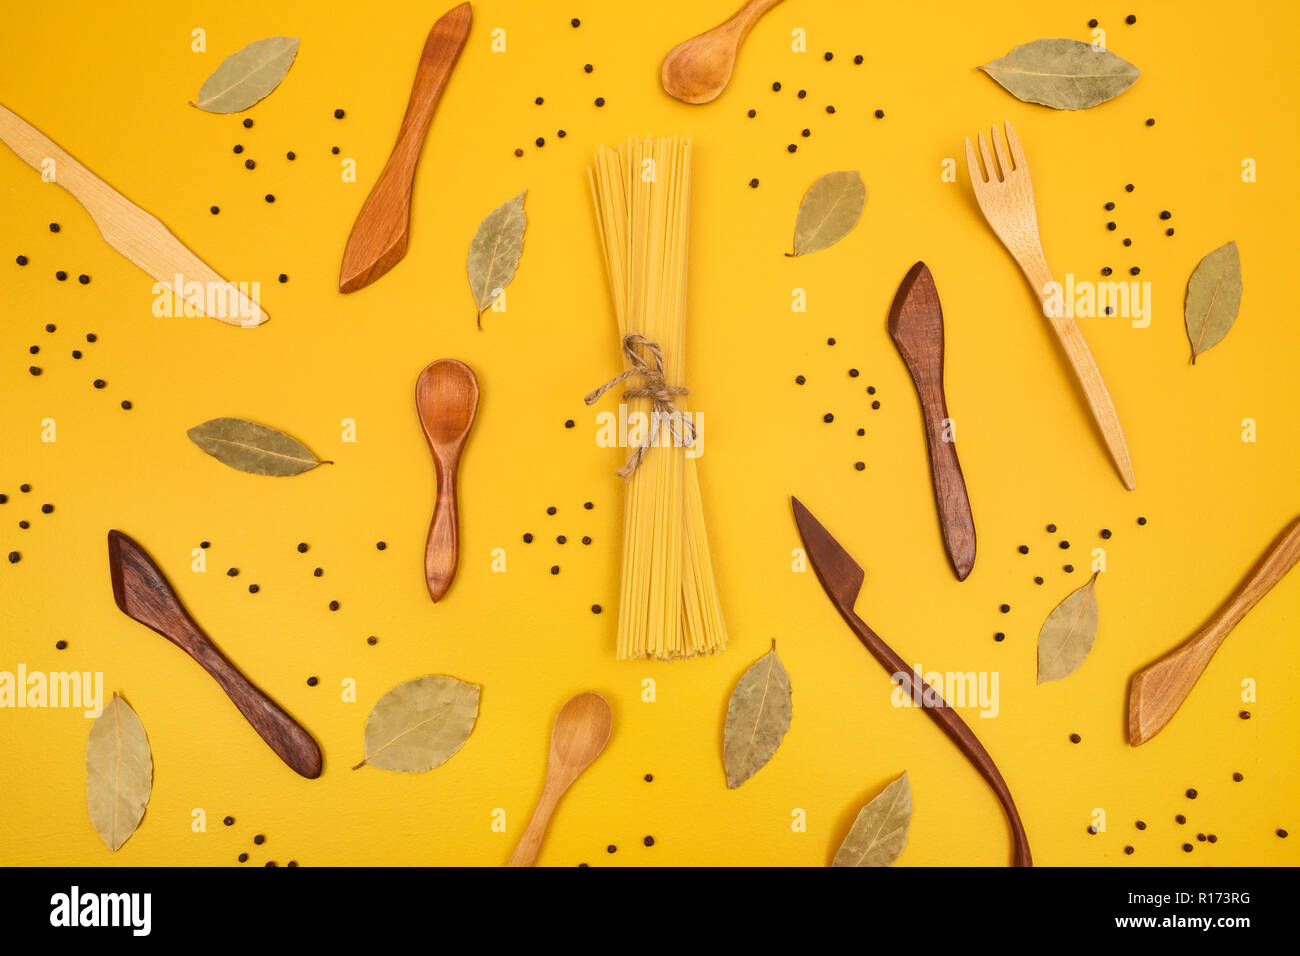 Handcrafted wooden utensils, pasta and spices. Flat lay composition on bright yellow background. - Stock Image